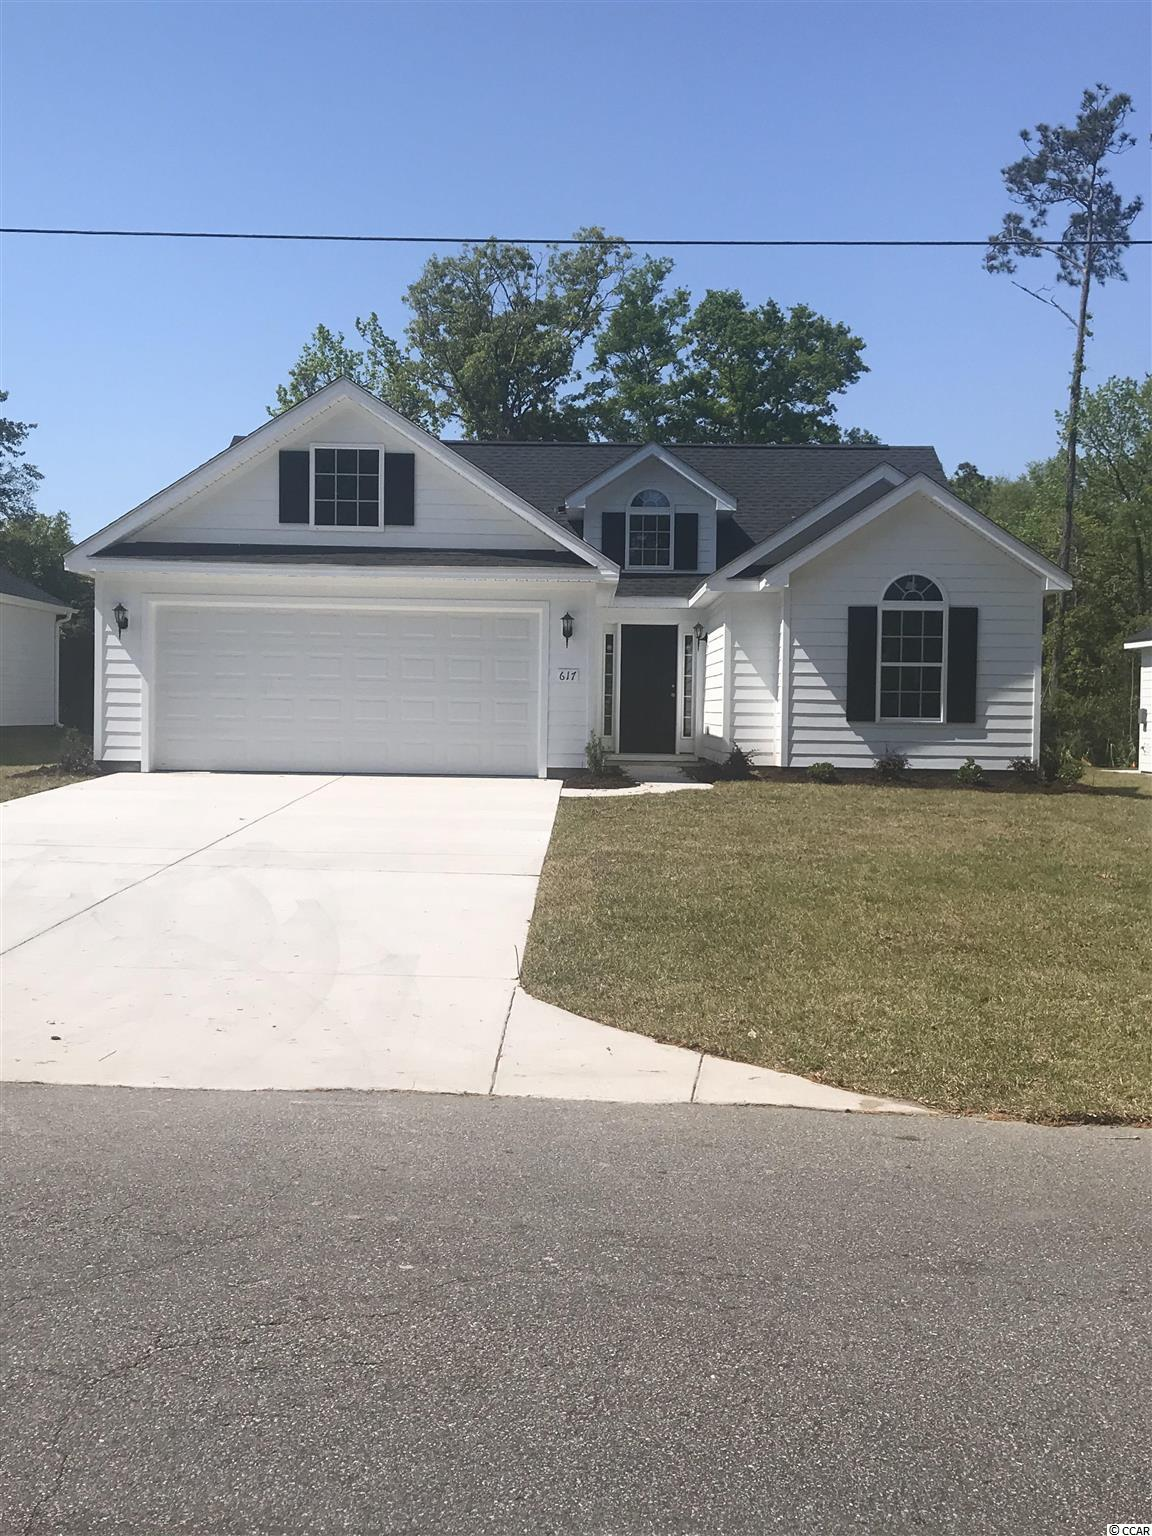 One of ten homes currently being built (or to be built) within a 3 min walk to the Atlantic Ocean.  Homes will feature Hardie  Plank siding, stainless steel appliances, LVP flooring and granite countertops